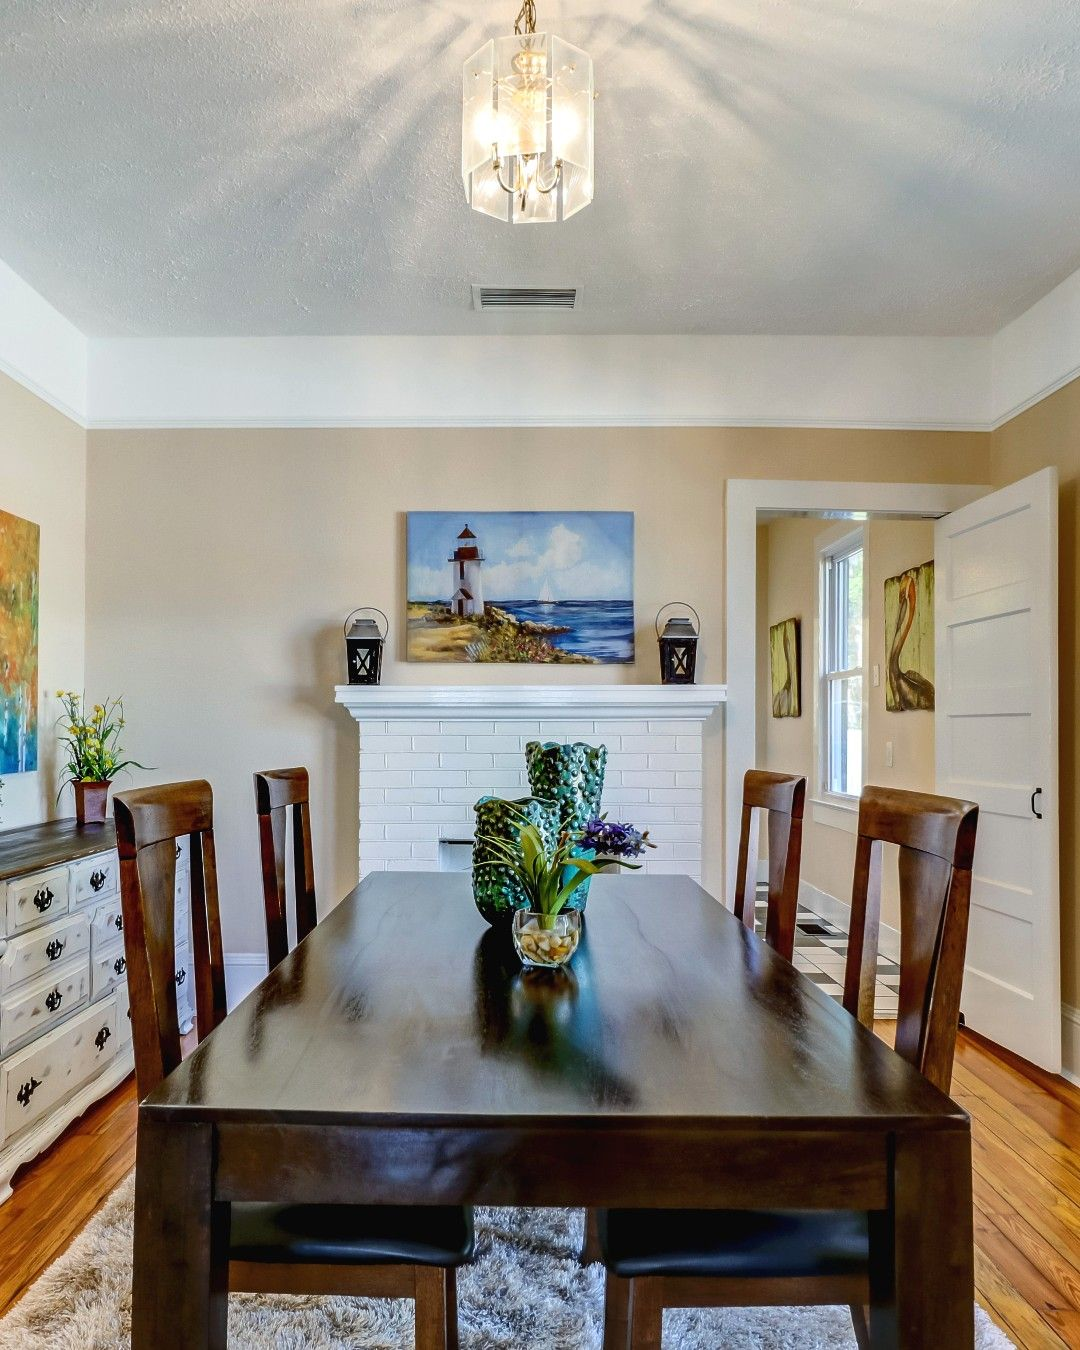 Home Staging Dining Room Table: A Coastal Feel 🌊🦀 #lighthouse #floridaliving #diningroom